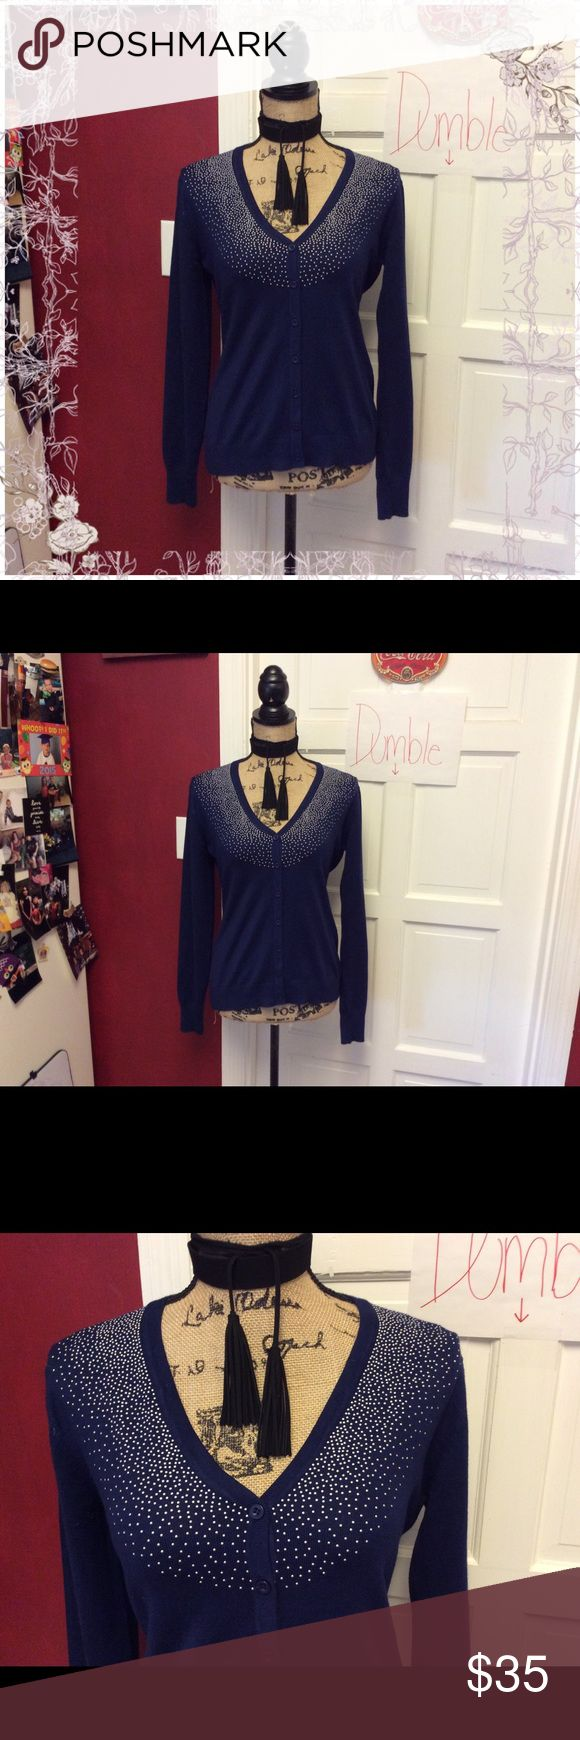 🦉🍁navy & silver cardigan 🦉🍁 New with tags pretty navy and silver cardigan- rayon and nylon blend - nice and lightweight melrose chic ny Sweaters Cardigans